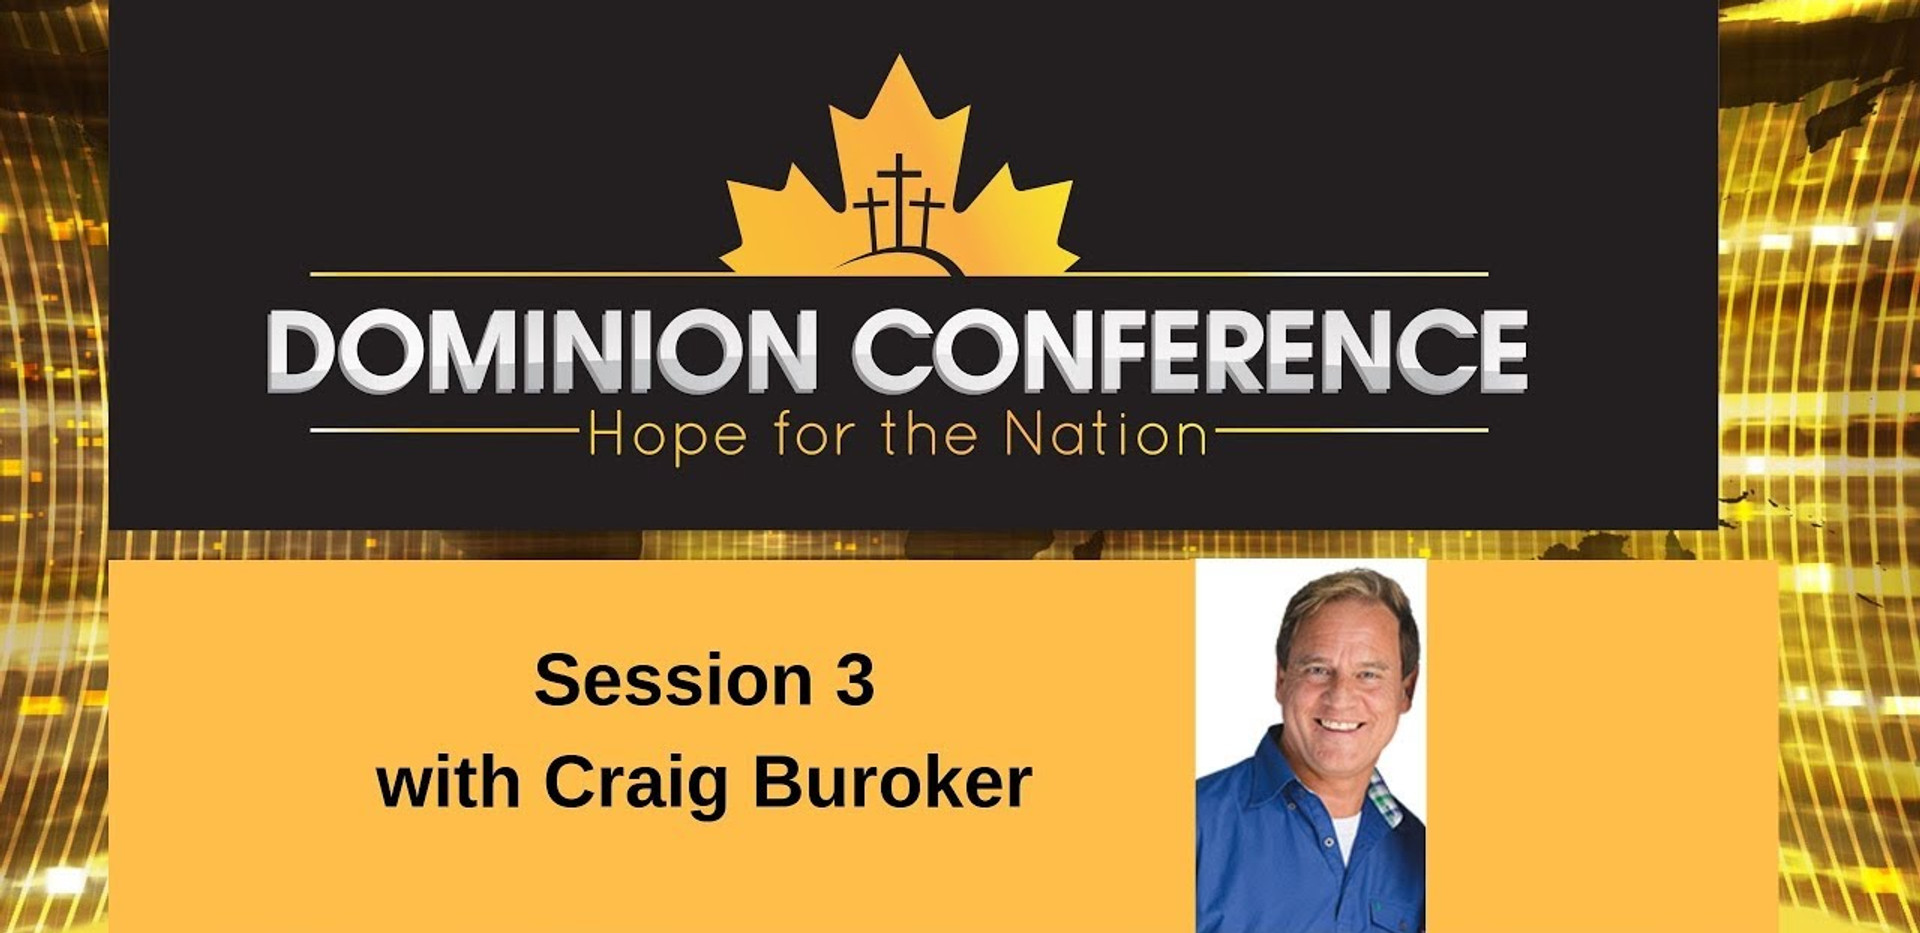 Dominion Conference Lethbridge 2019 | Session Three | Saturday, June 29th 2019 | Craig Buroker